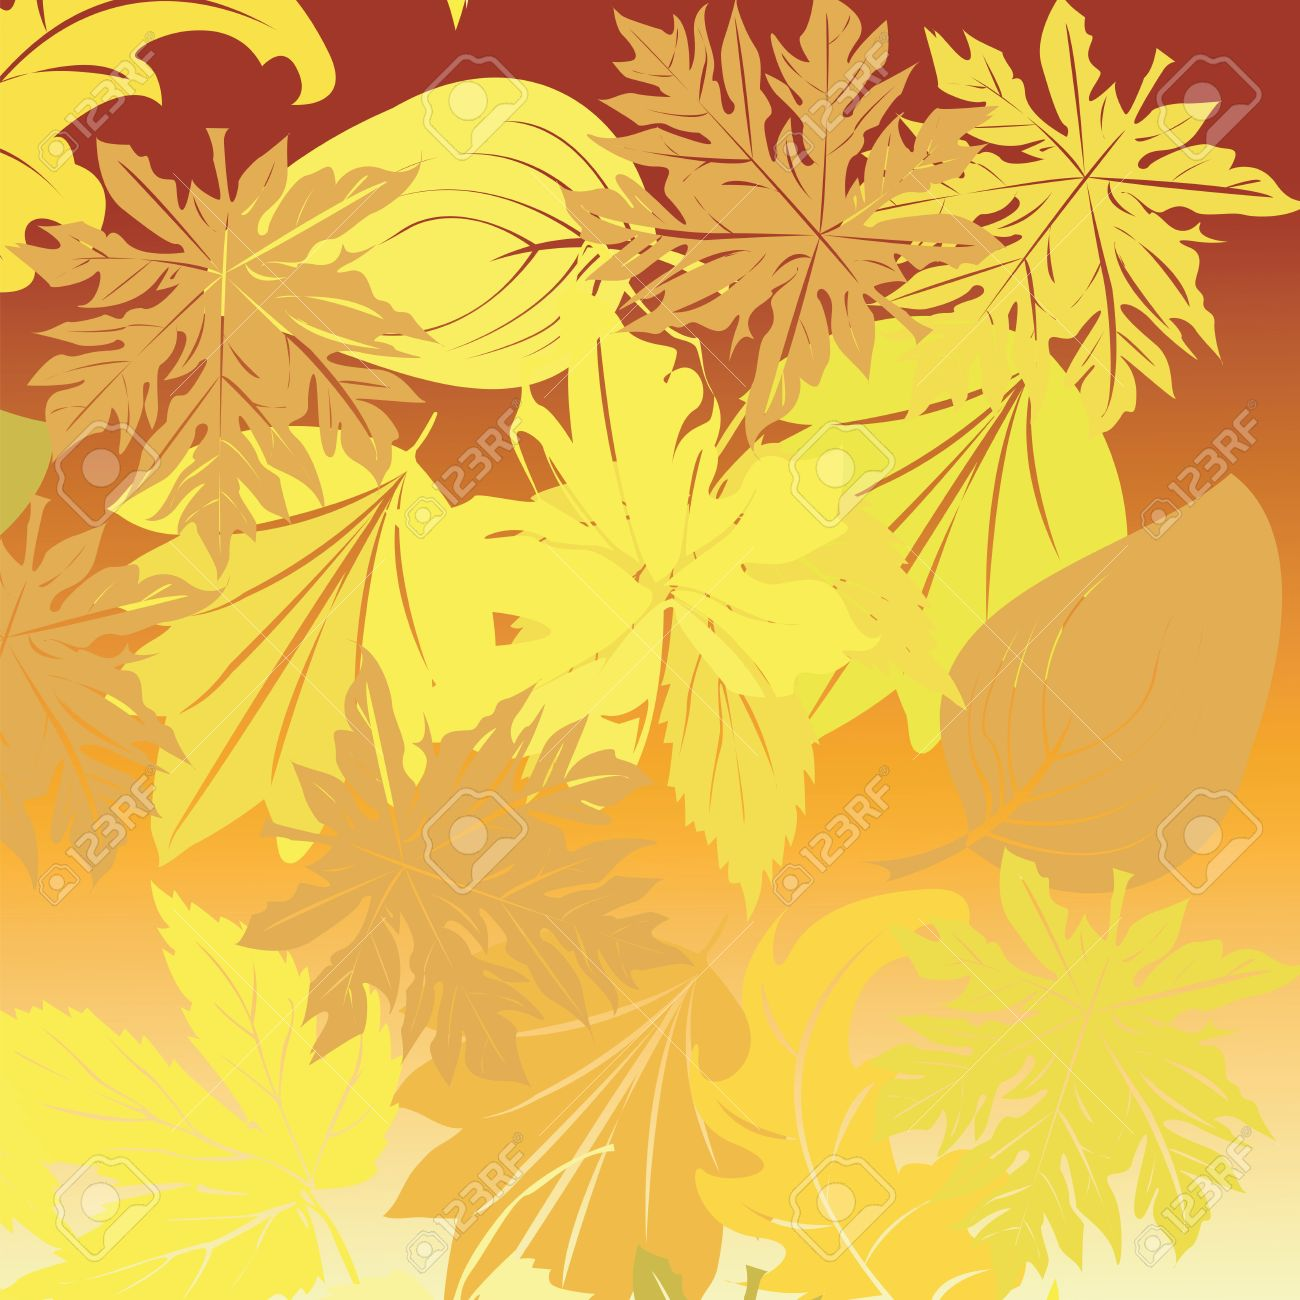 Falling leaves background, art Stock Photo - 6195849